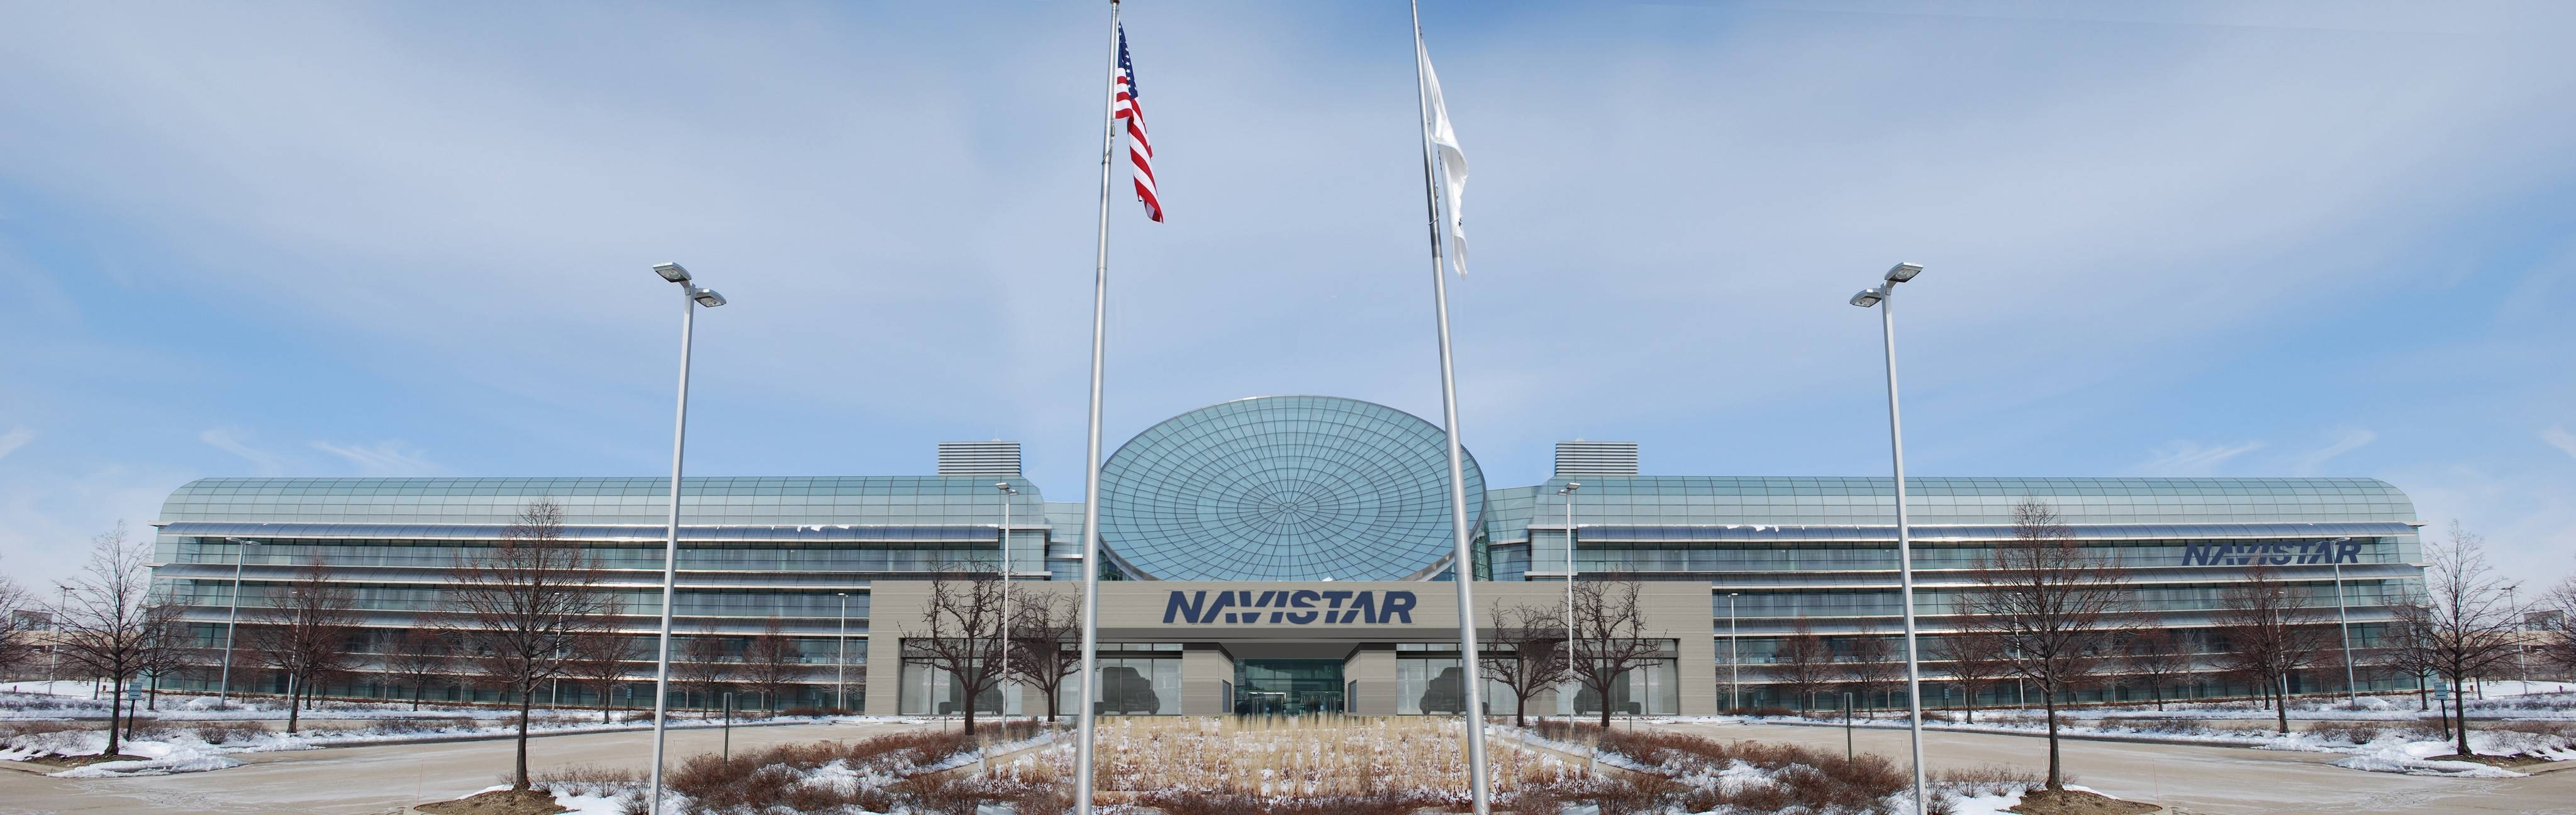 Navistar based in Lisle announced it will close its Indianapolis foundry and cut 180 jobs.